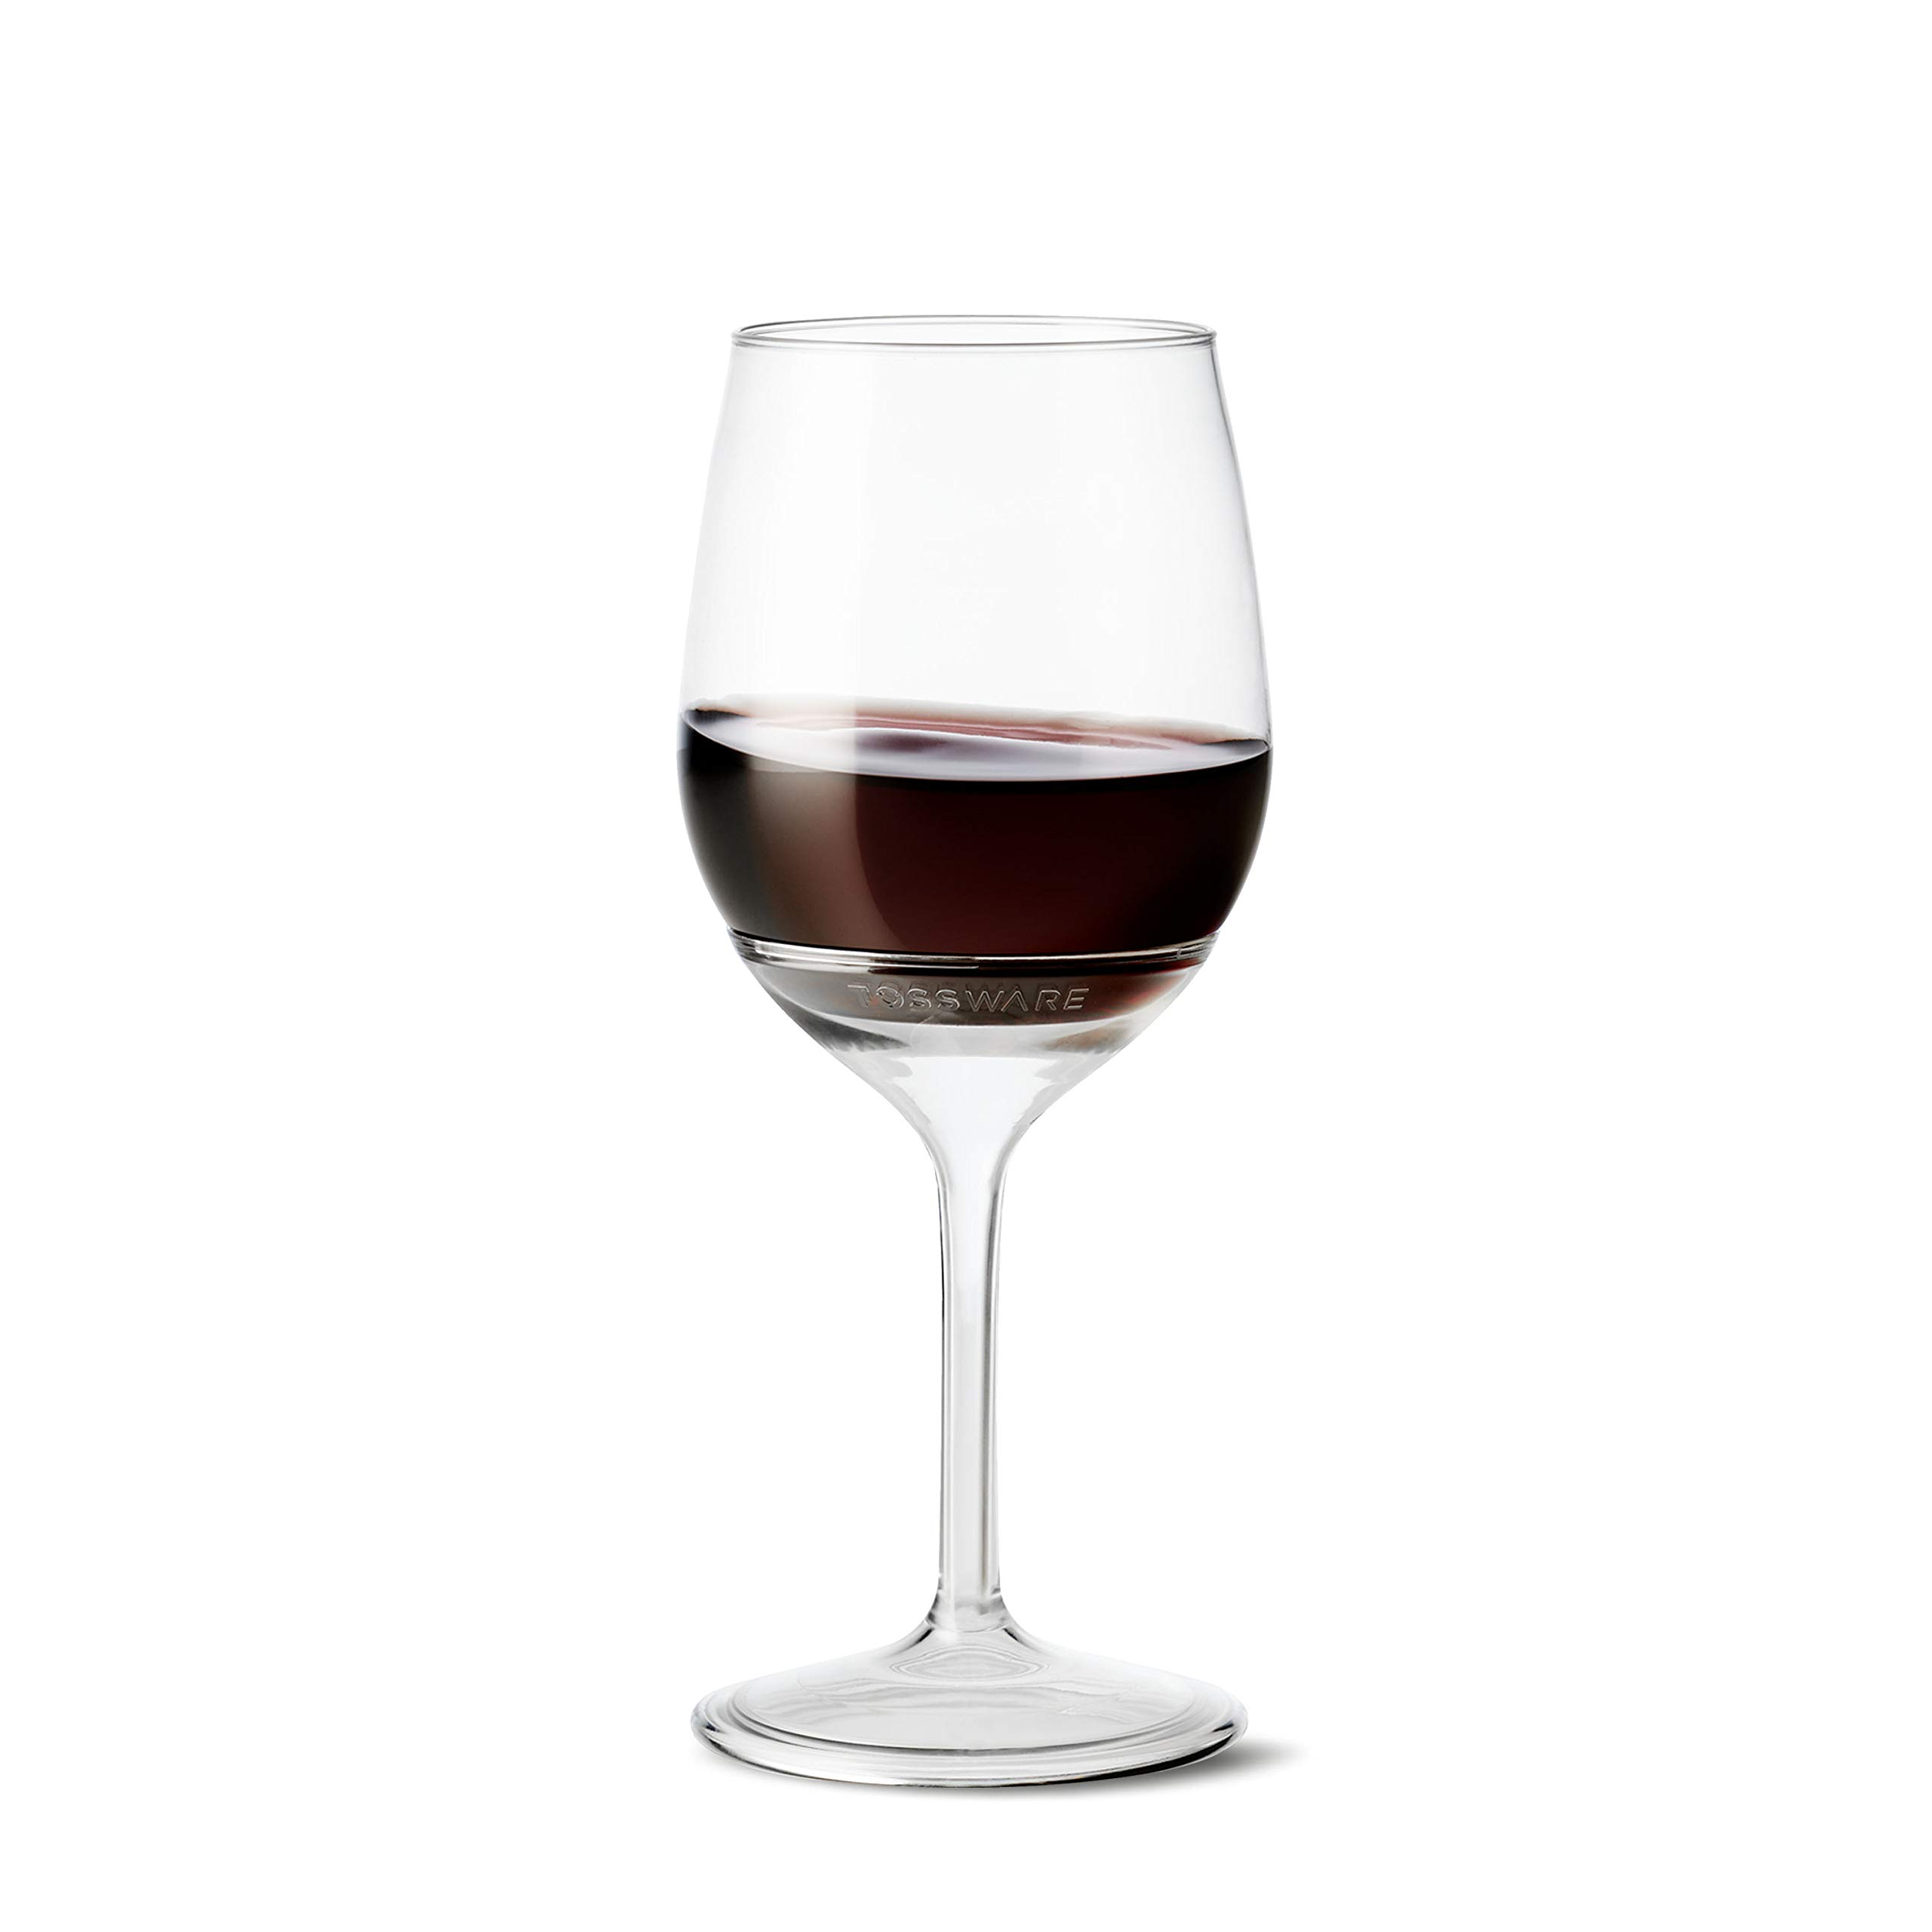 TOSSWARE VS01020047 14oz Stemmed Vino-Recyclable Wine Plastic Cup Detachable Shatterproof, and Bpa-Free Glasses, Set of 48, Clear by TOSSWARE